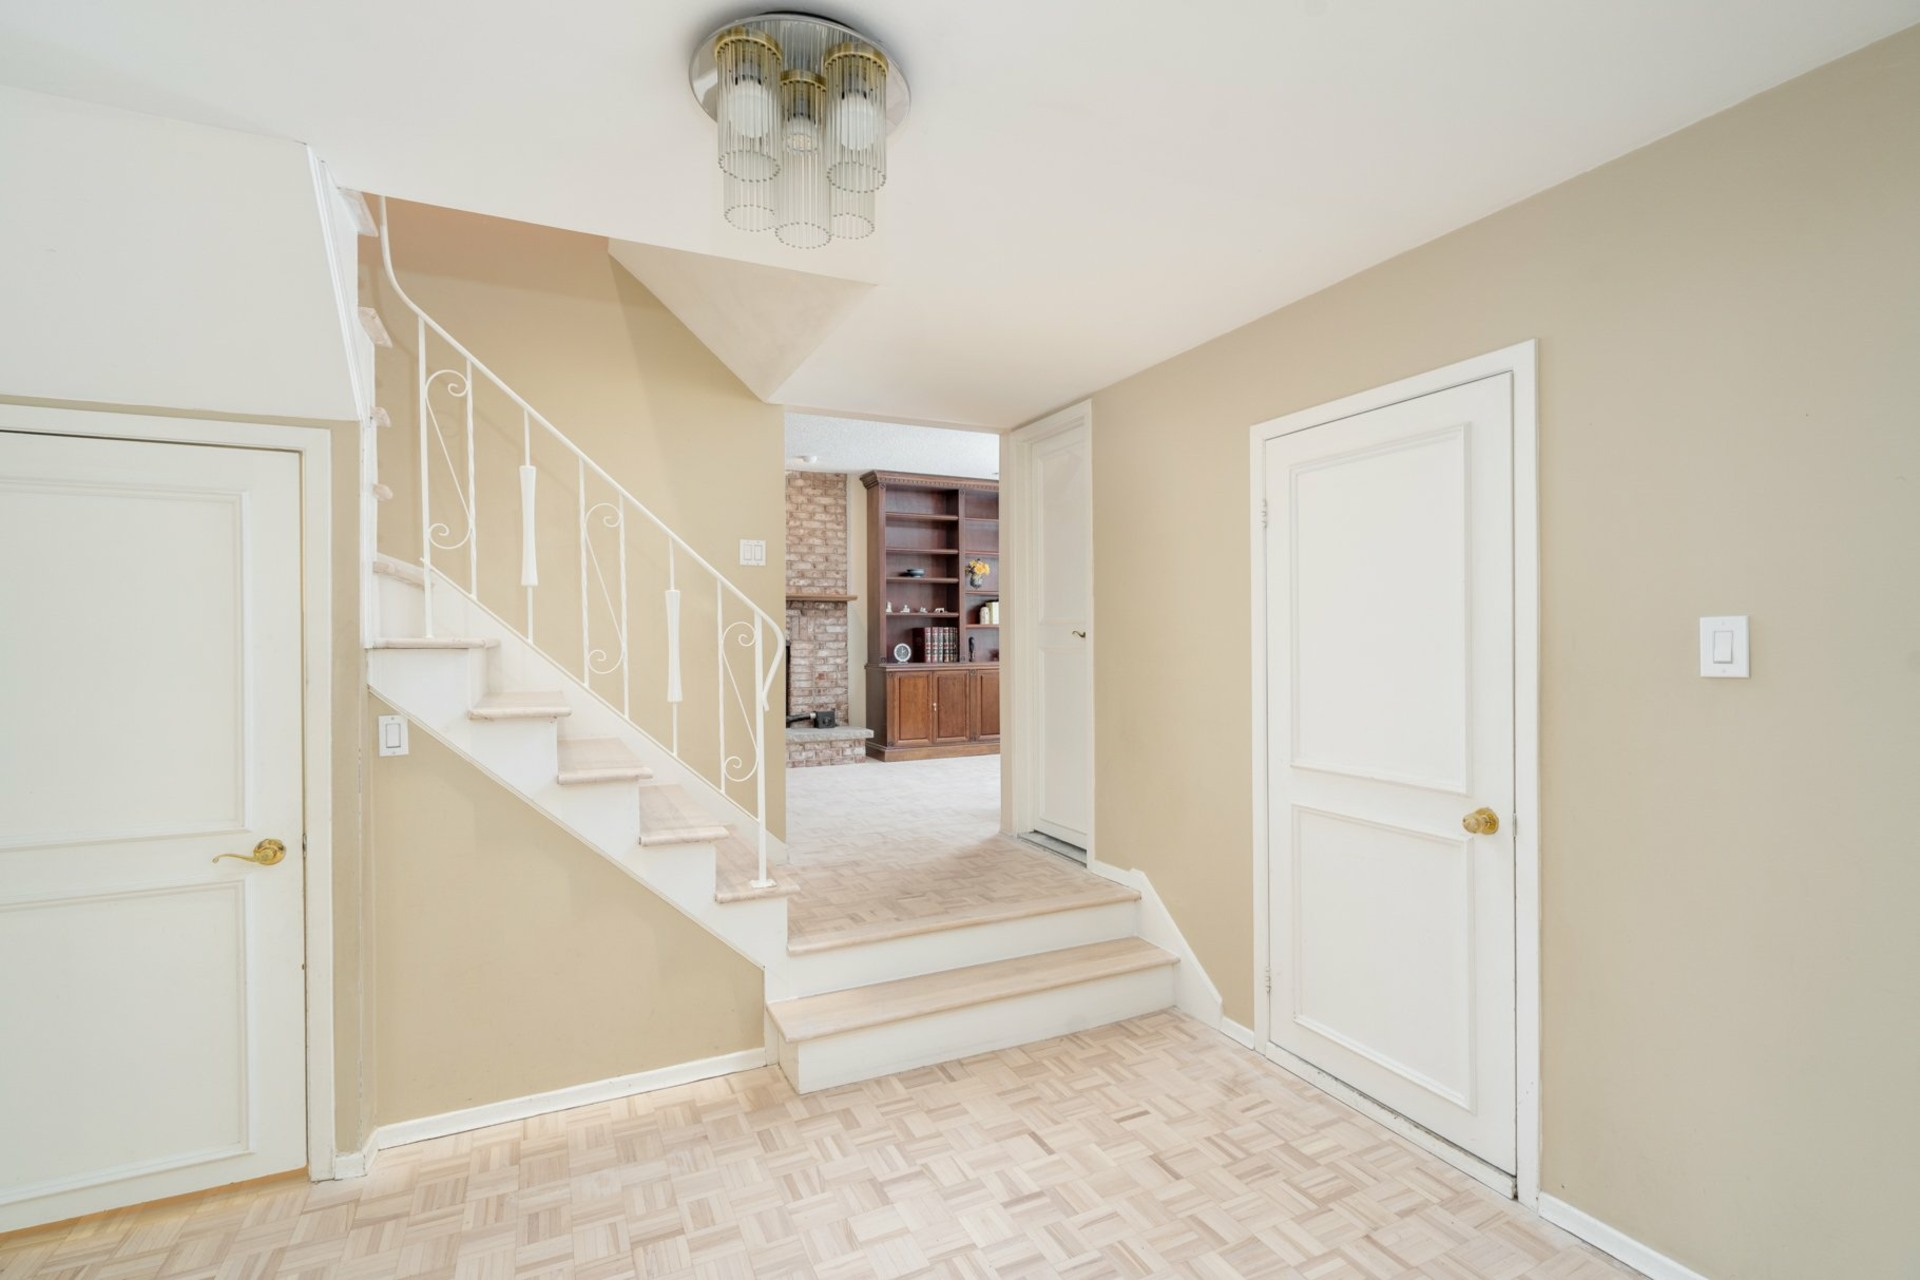 image 8 - House For sale Hampstead - 10 rooms